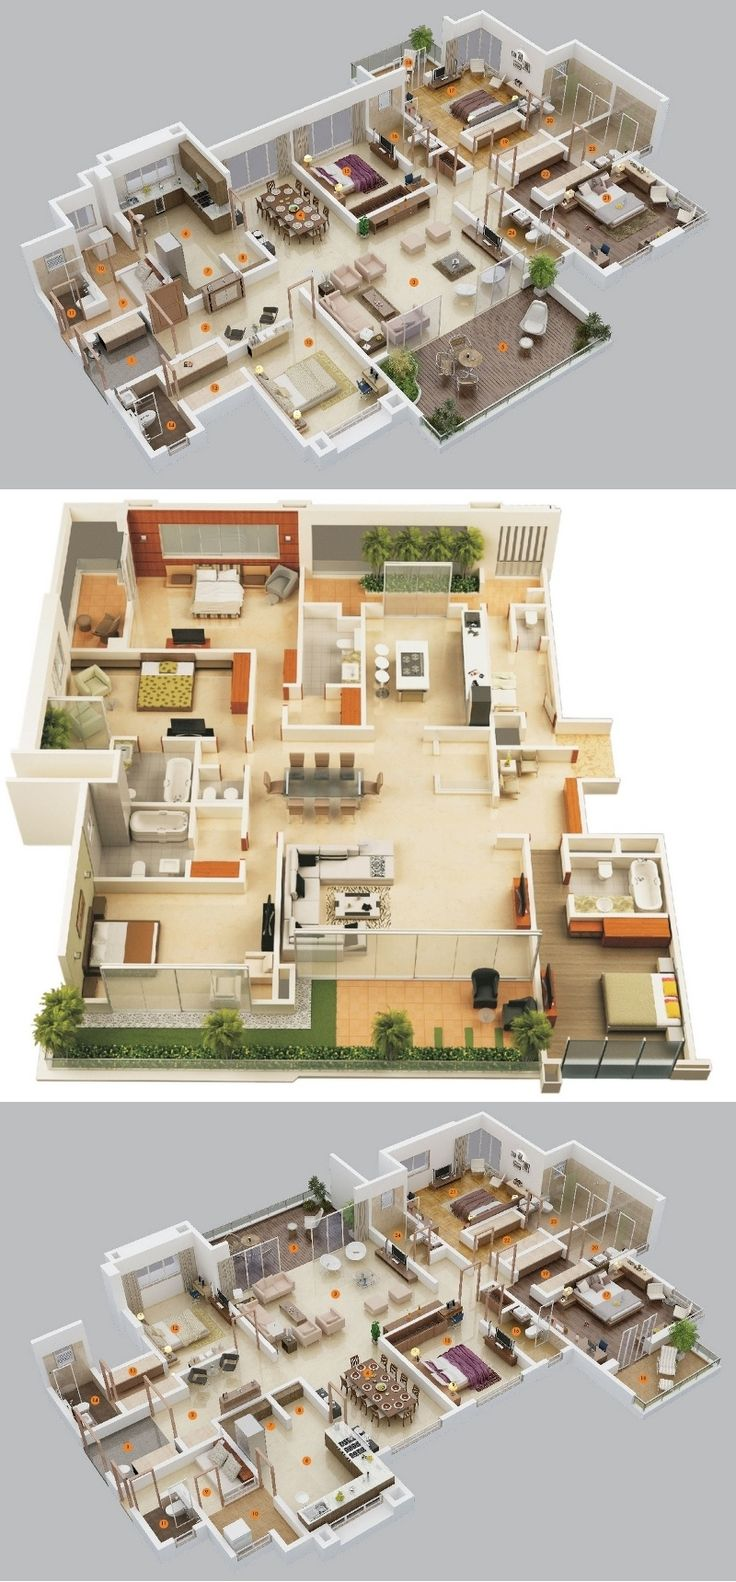 4 Bedroom Apartment/House Plans |Source: Privie World